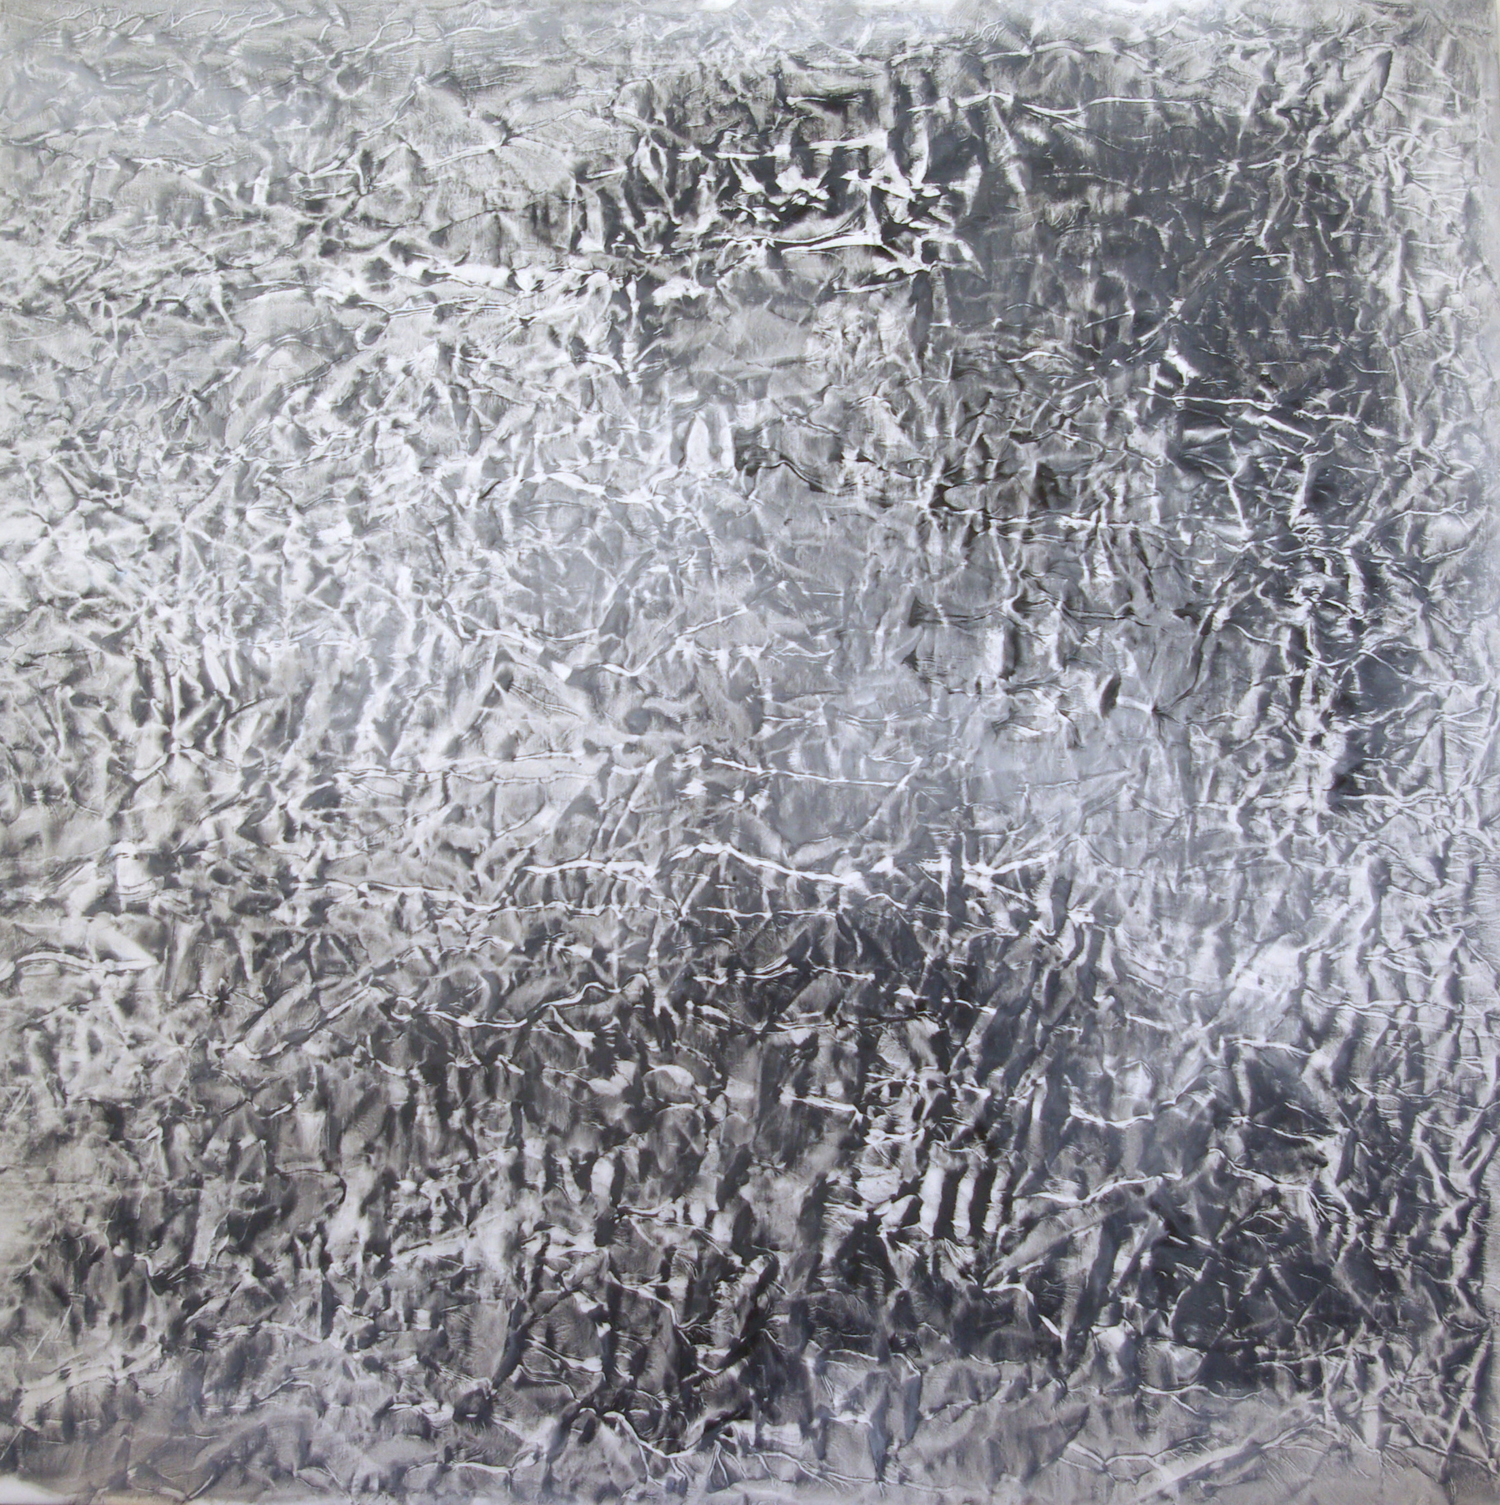 2007 Earth #1262 Oil, alkyd, wax on canvas 50 x 50 inches  © Vicky Colombet, all rights reserved.